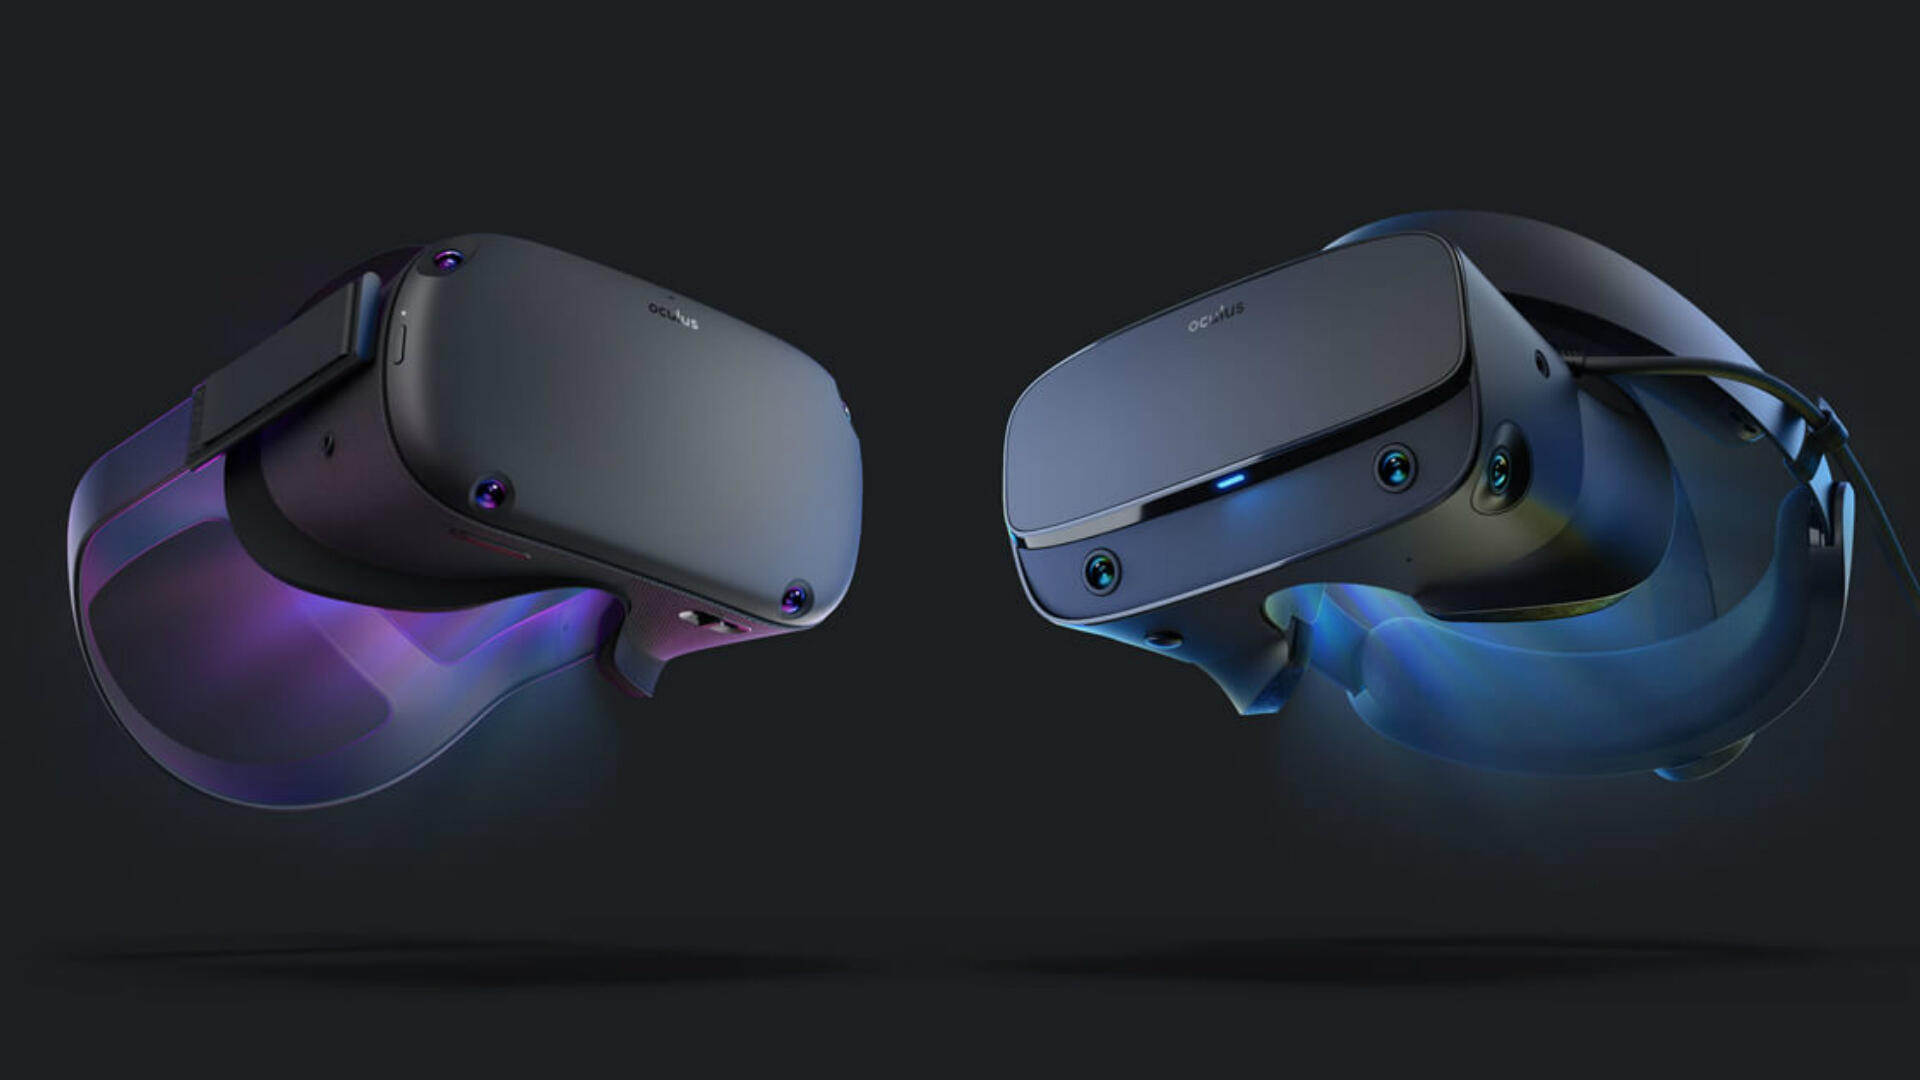 Oculus Quest and Rift S Are a Real Step Towards Proper VR for the Masses